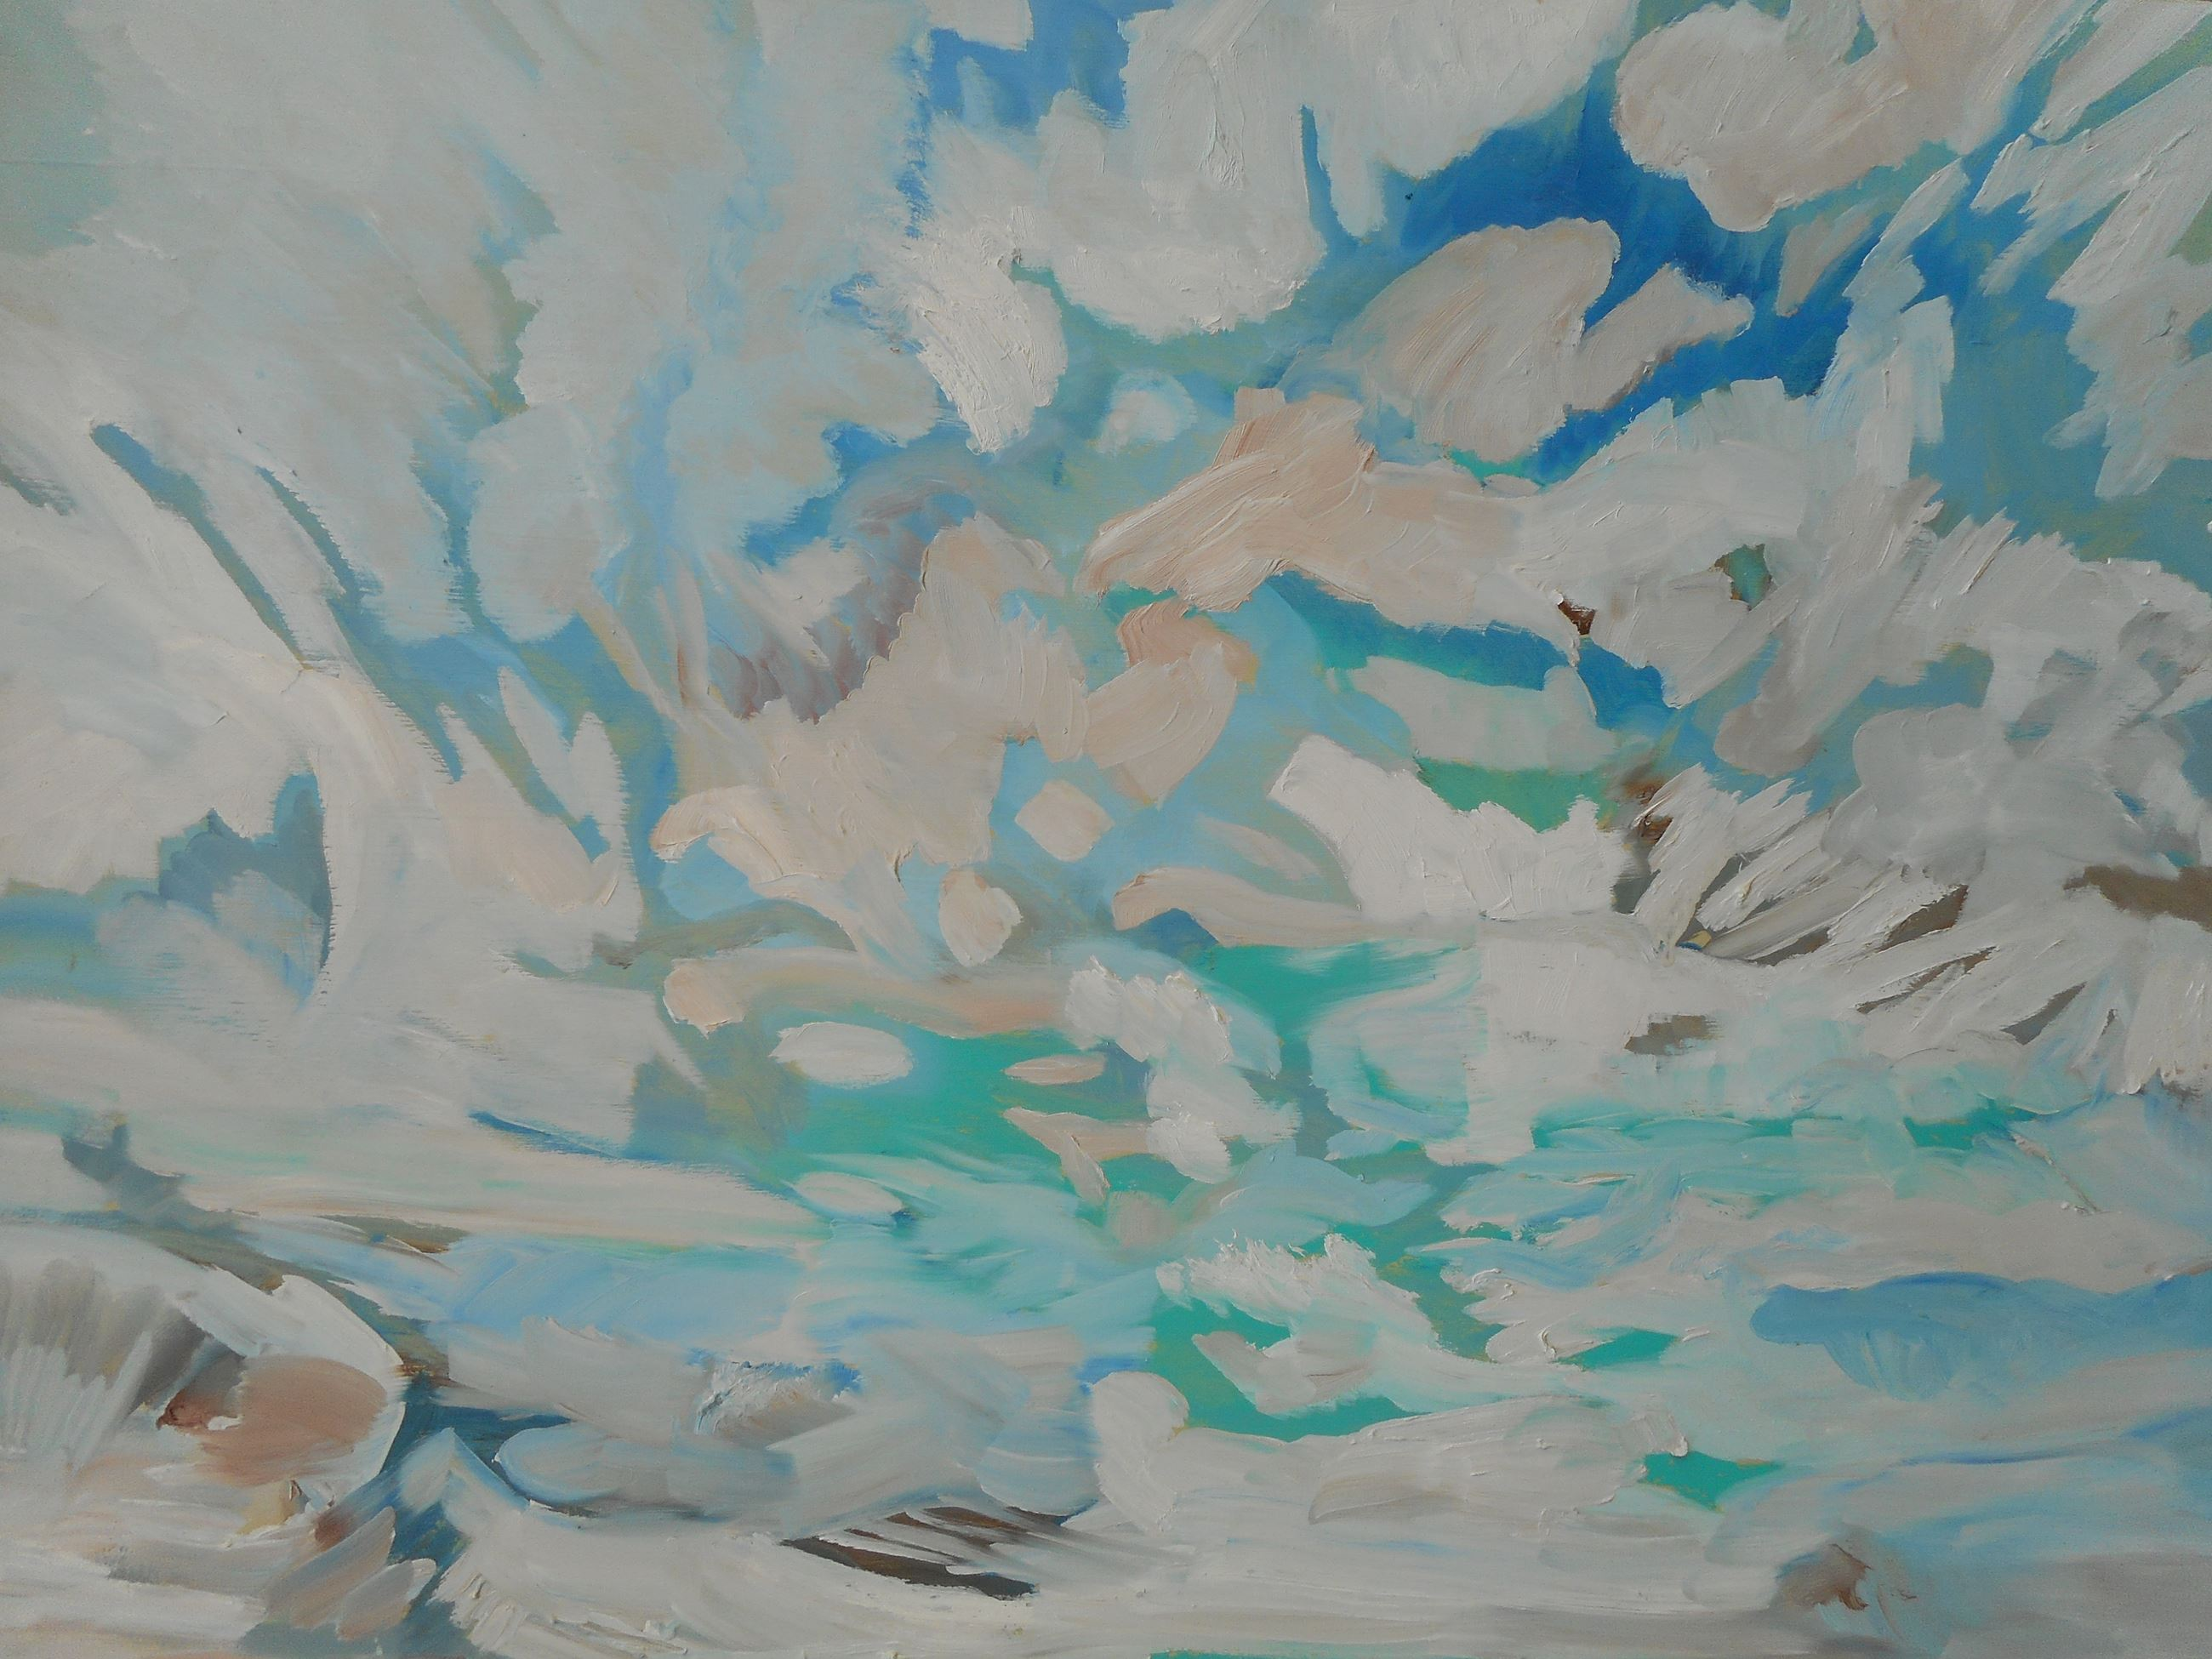 An oil painting of clouds and sky by Karen Mobley